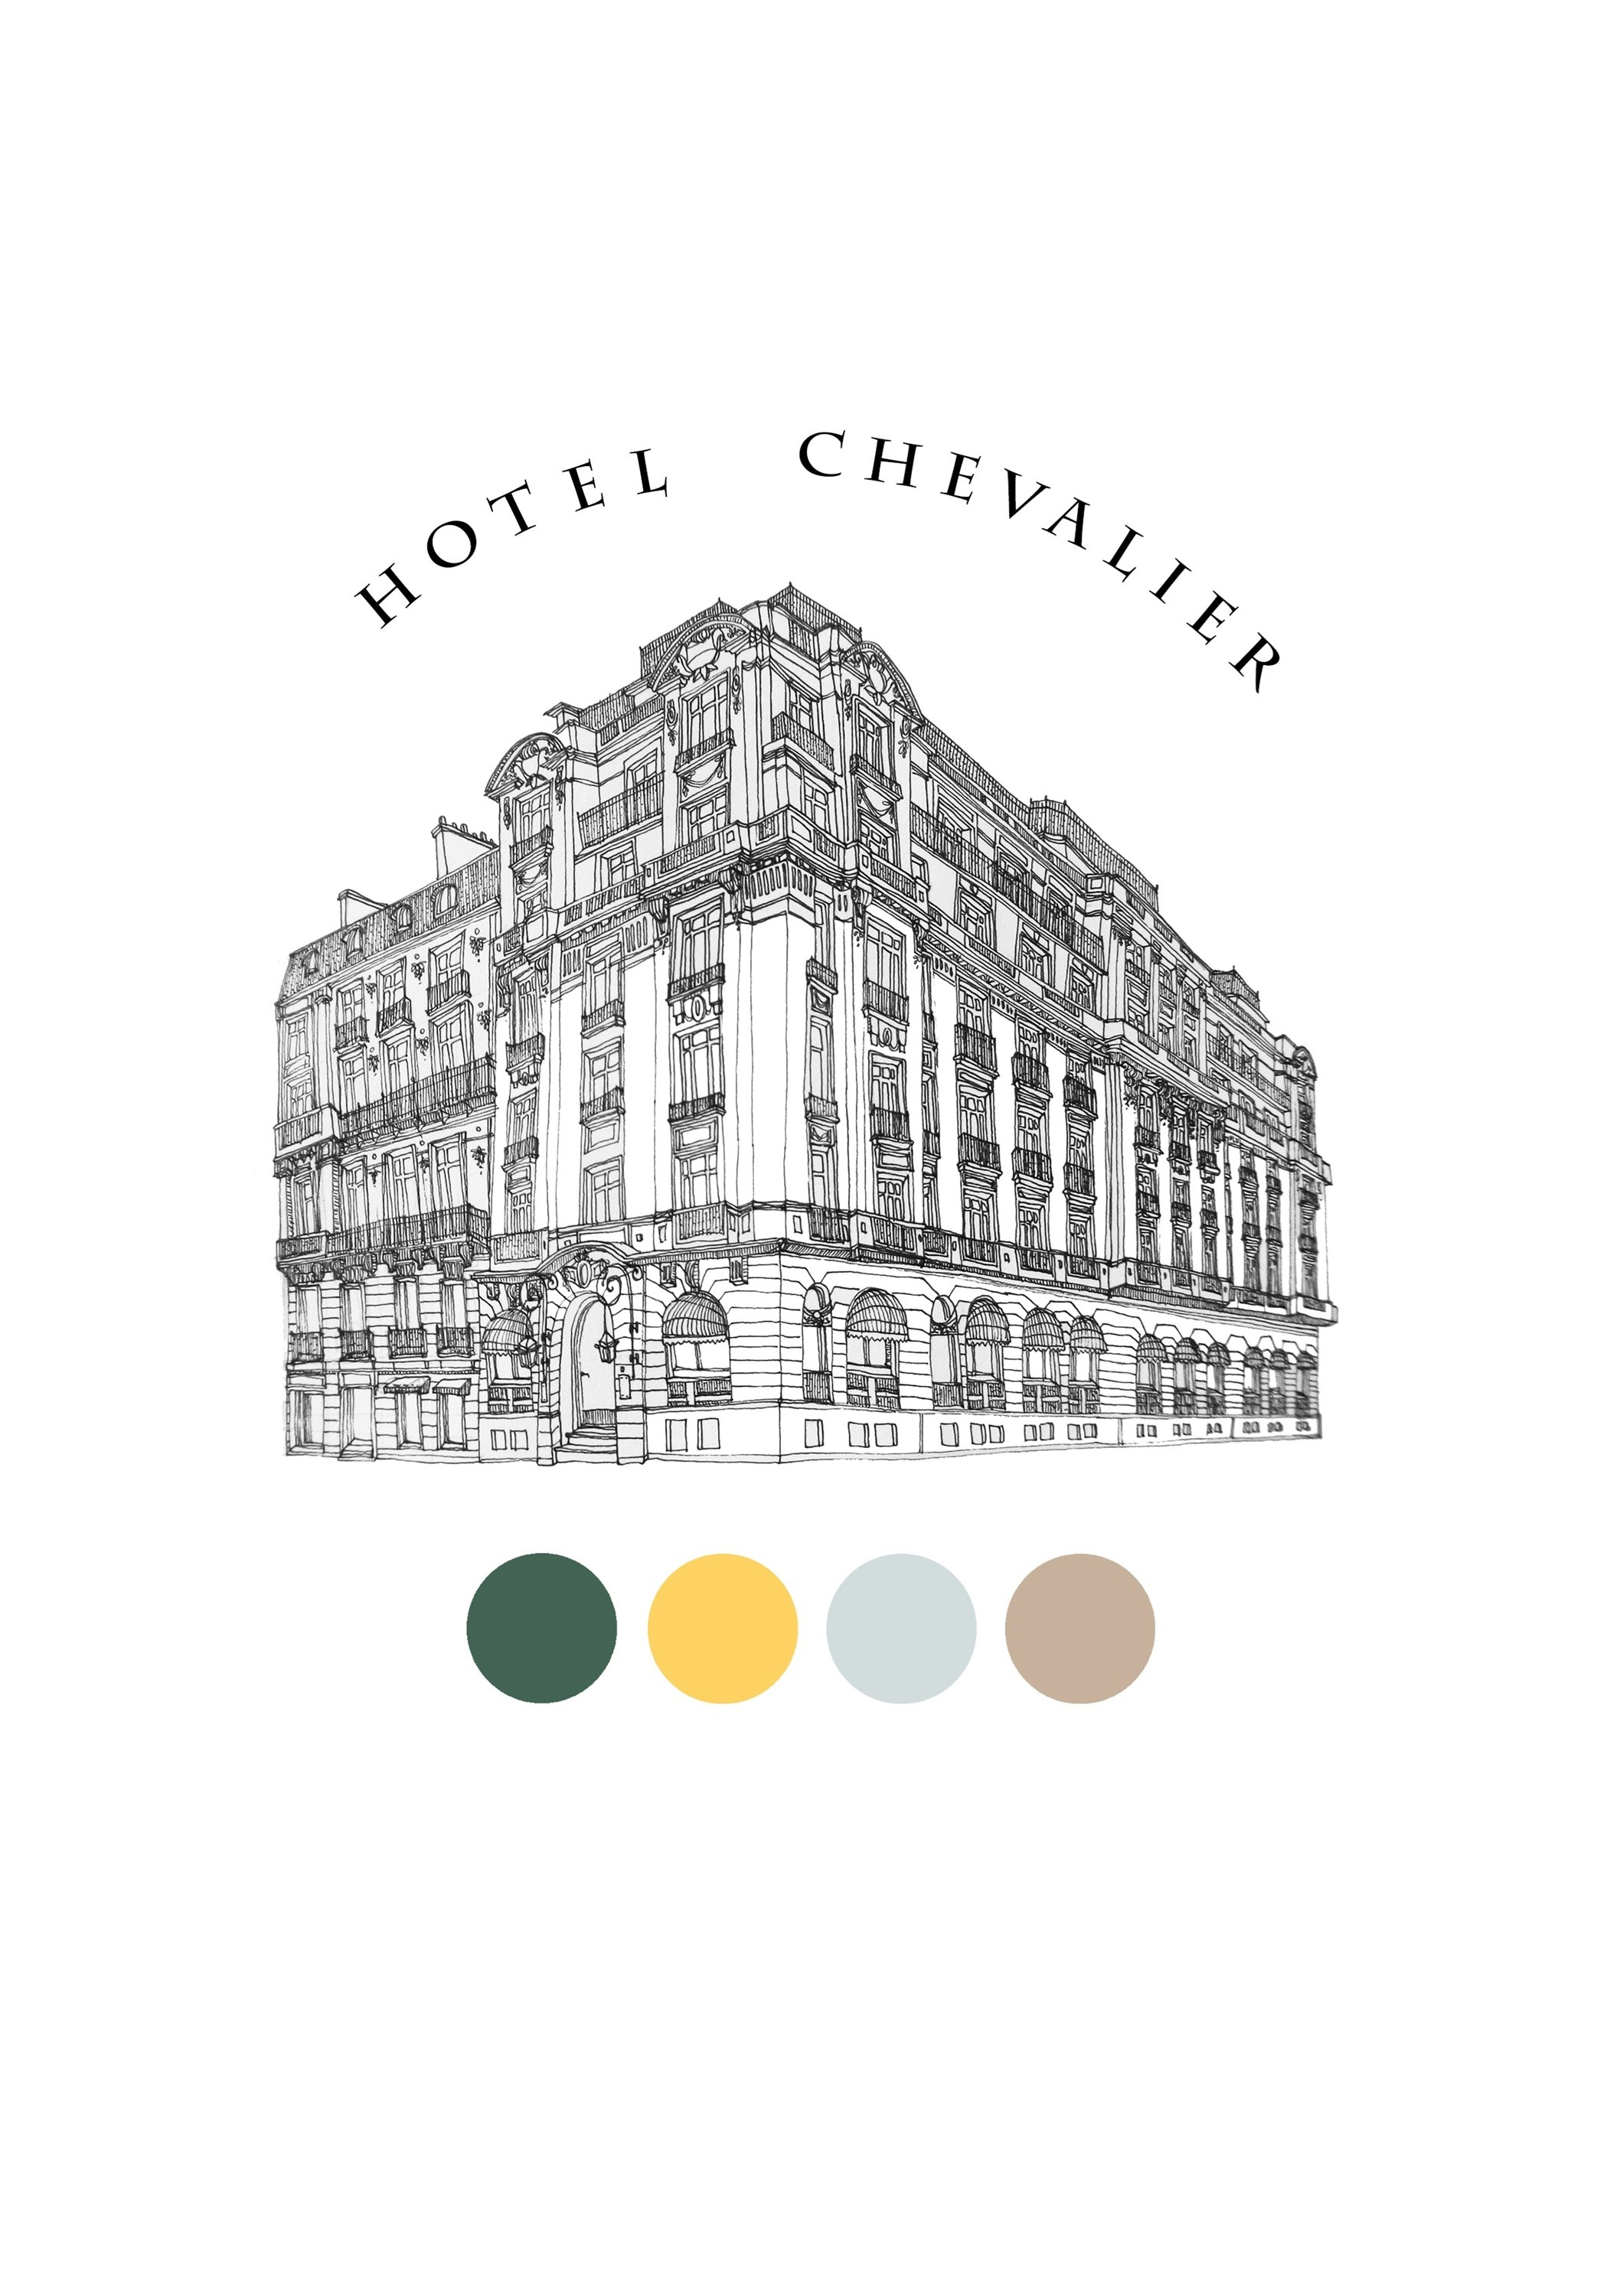 Hotel Chevalier, original Places Pen Drawing and Illustration by Florisa Novo Rodrigues